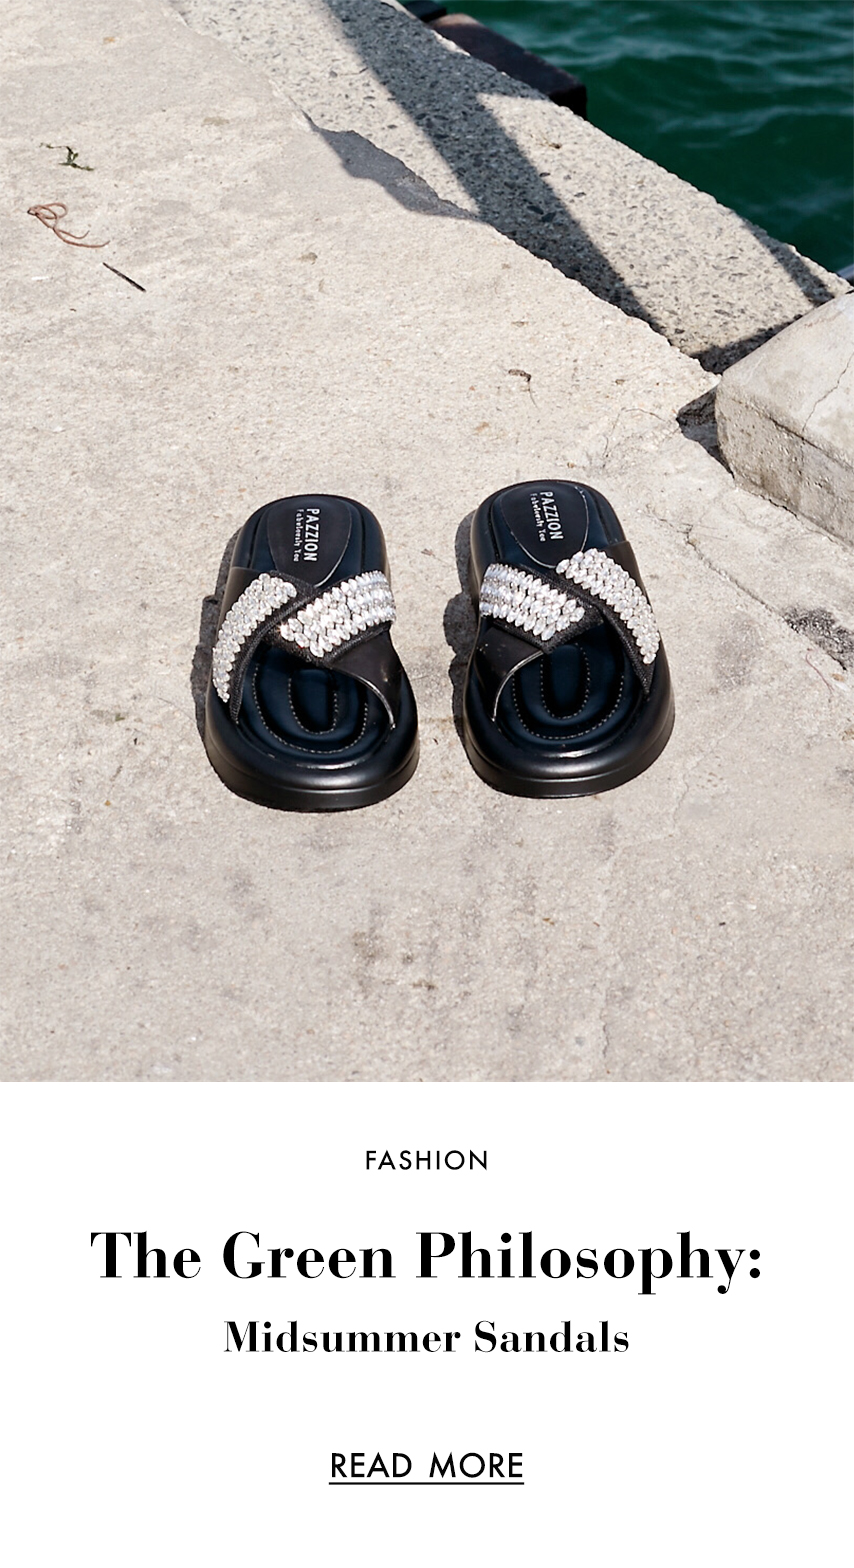 THE GREEN PHILOSOPHY: MIDSUMMER SANDALS TO SUIT EVERY LOOK AND MOOD